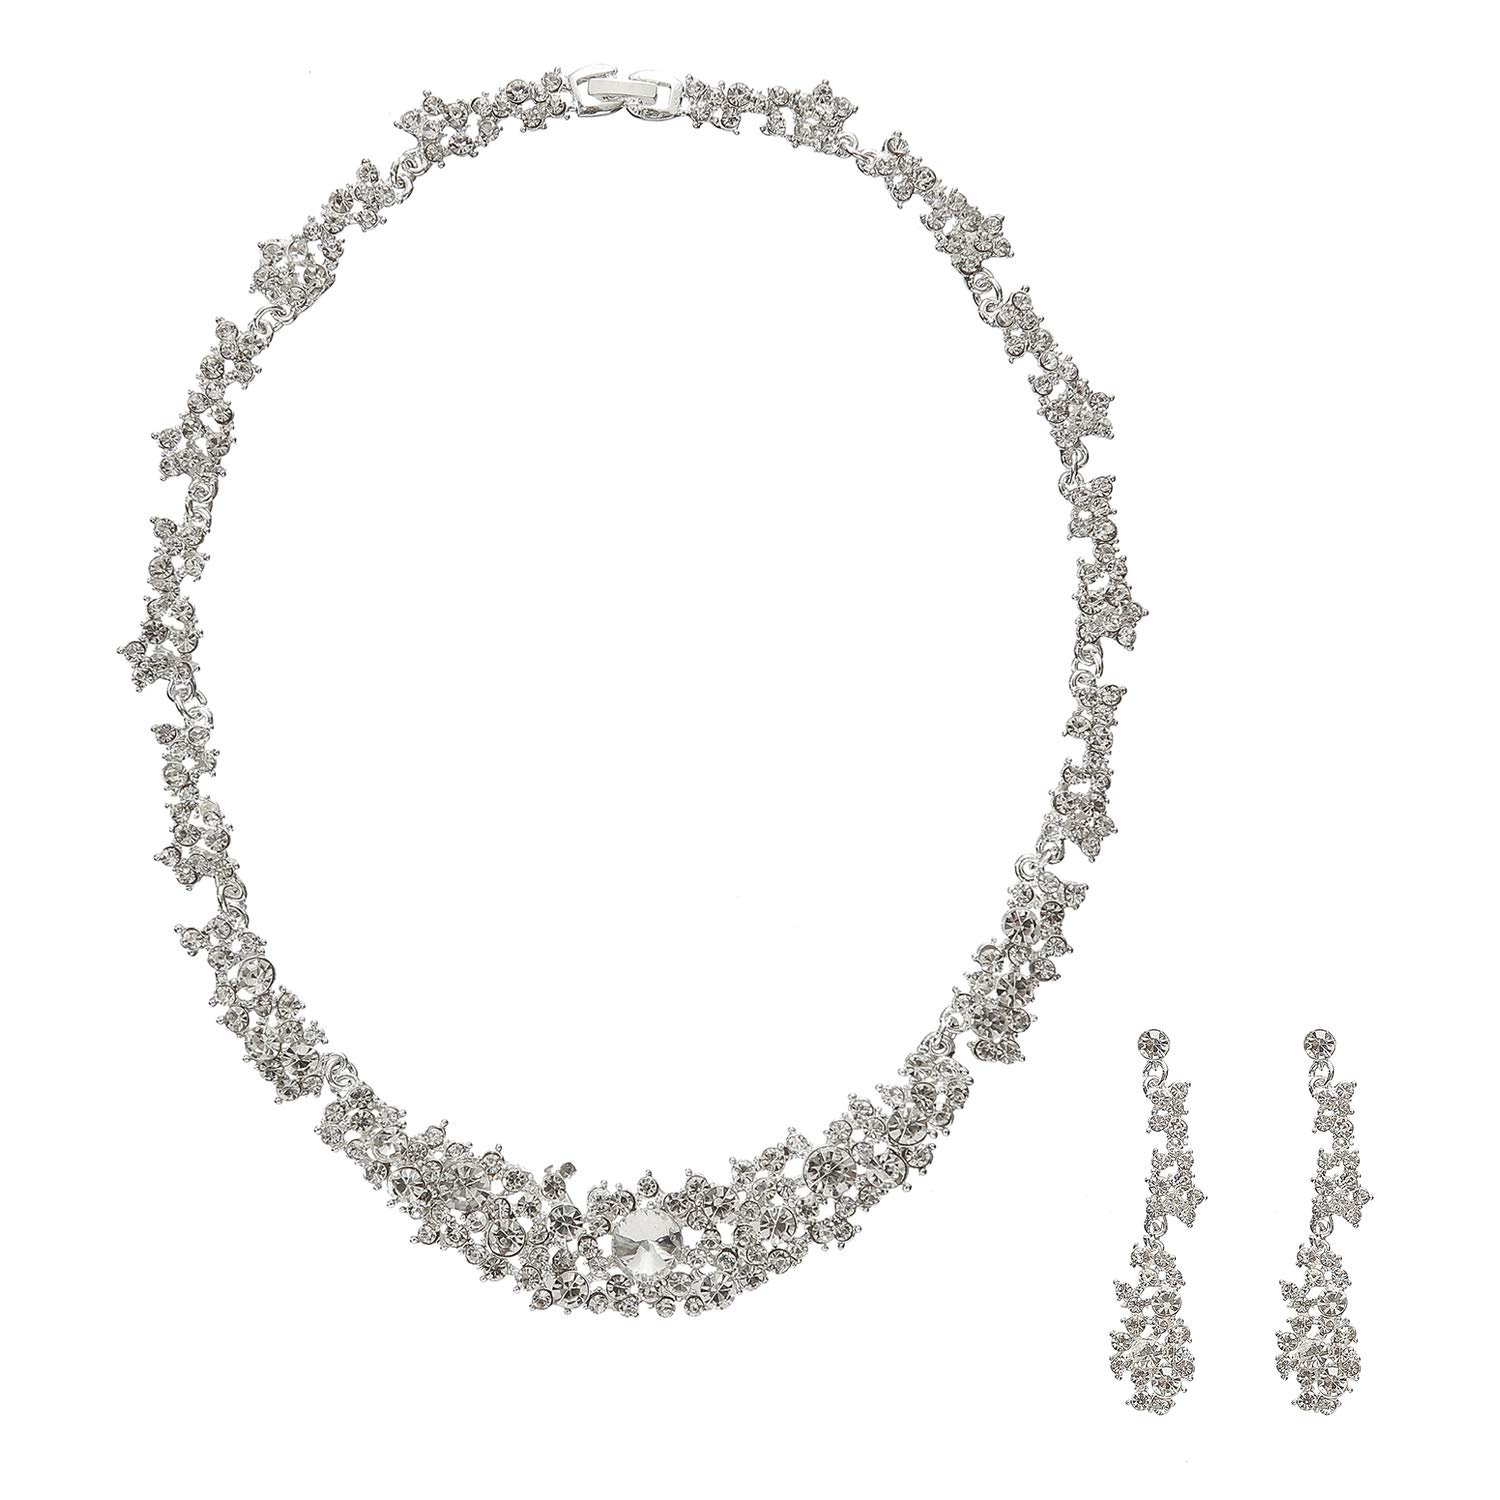 Metme Rhinestone Crystal Necklace and Earrings Wedding Jewelry Set Gifts Prom Accessories